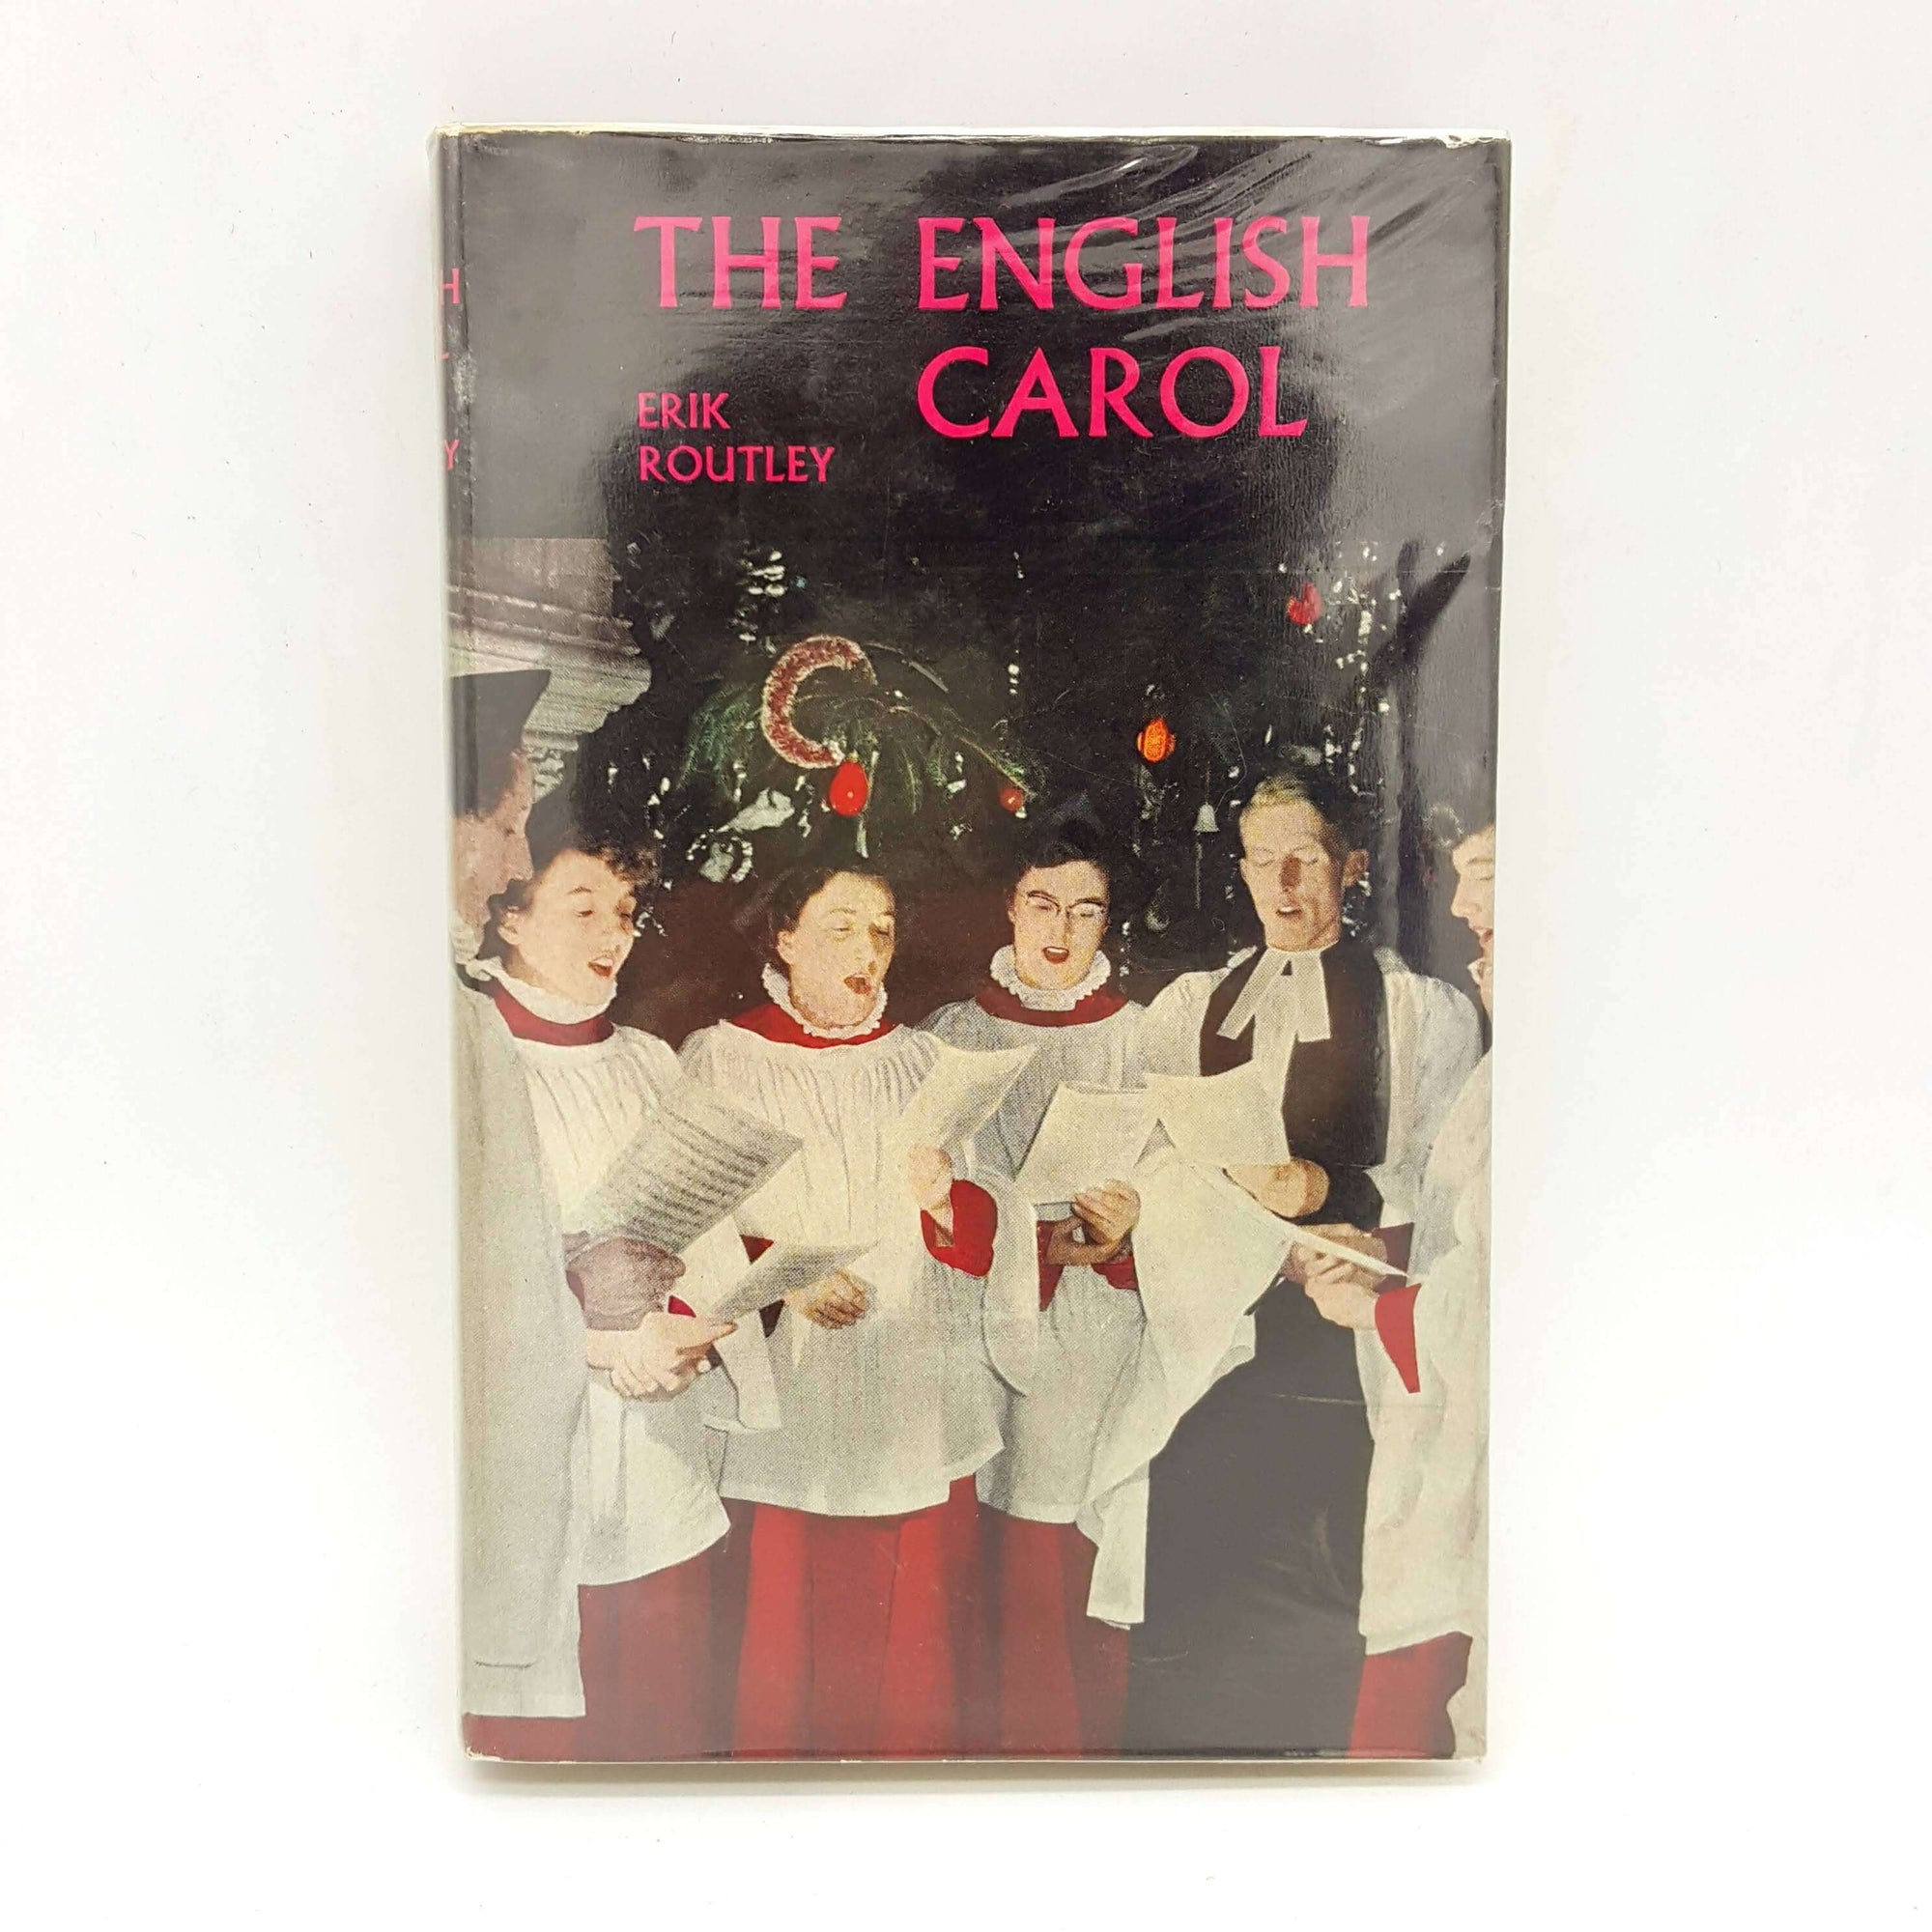 The English Carol by Erik Routley 195 Country House Library